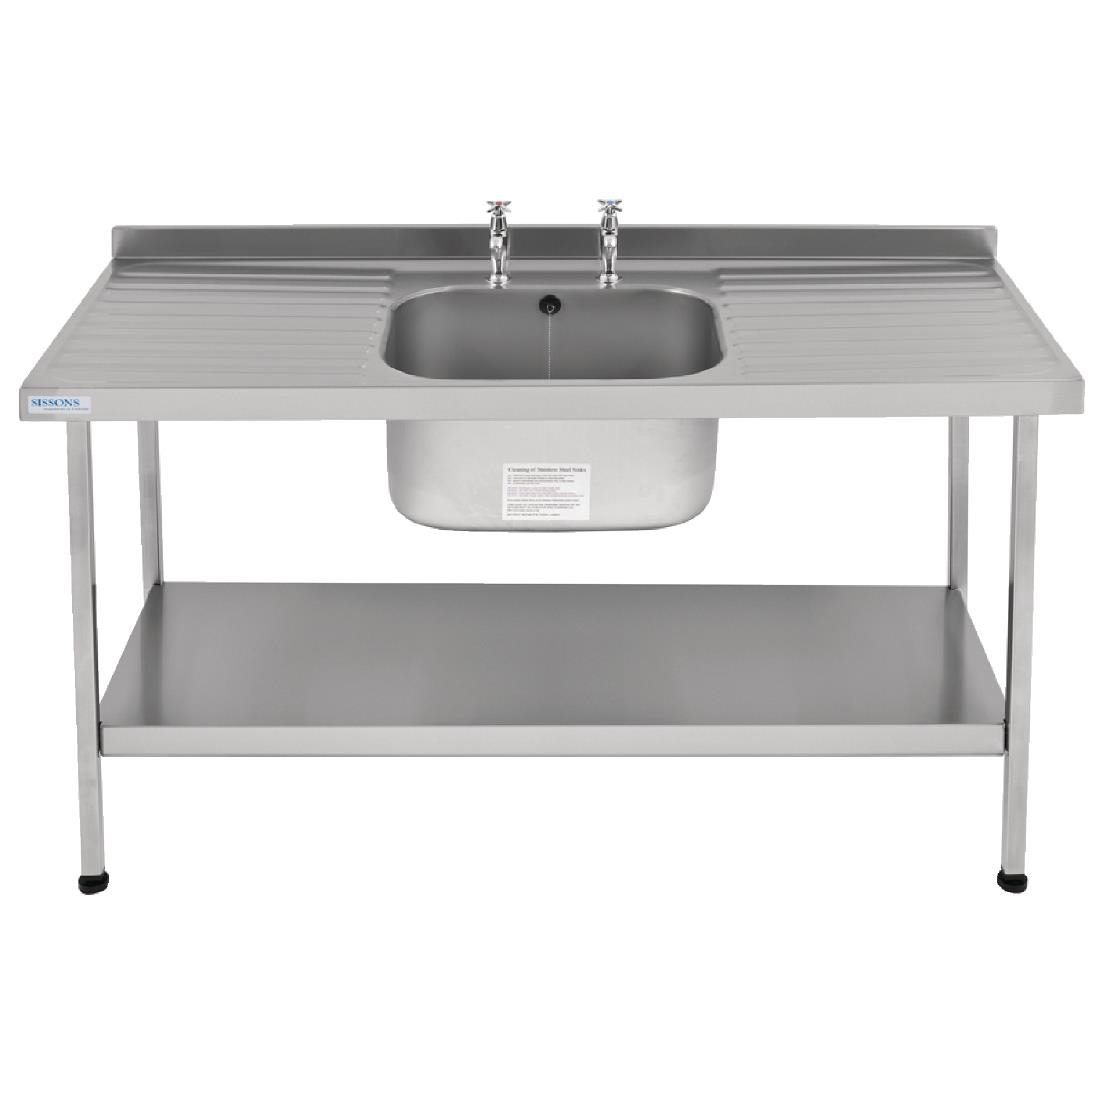 Image of Franke Sissons Self Assembly Stainless Steel Sink Double Drainer 1800x650mm